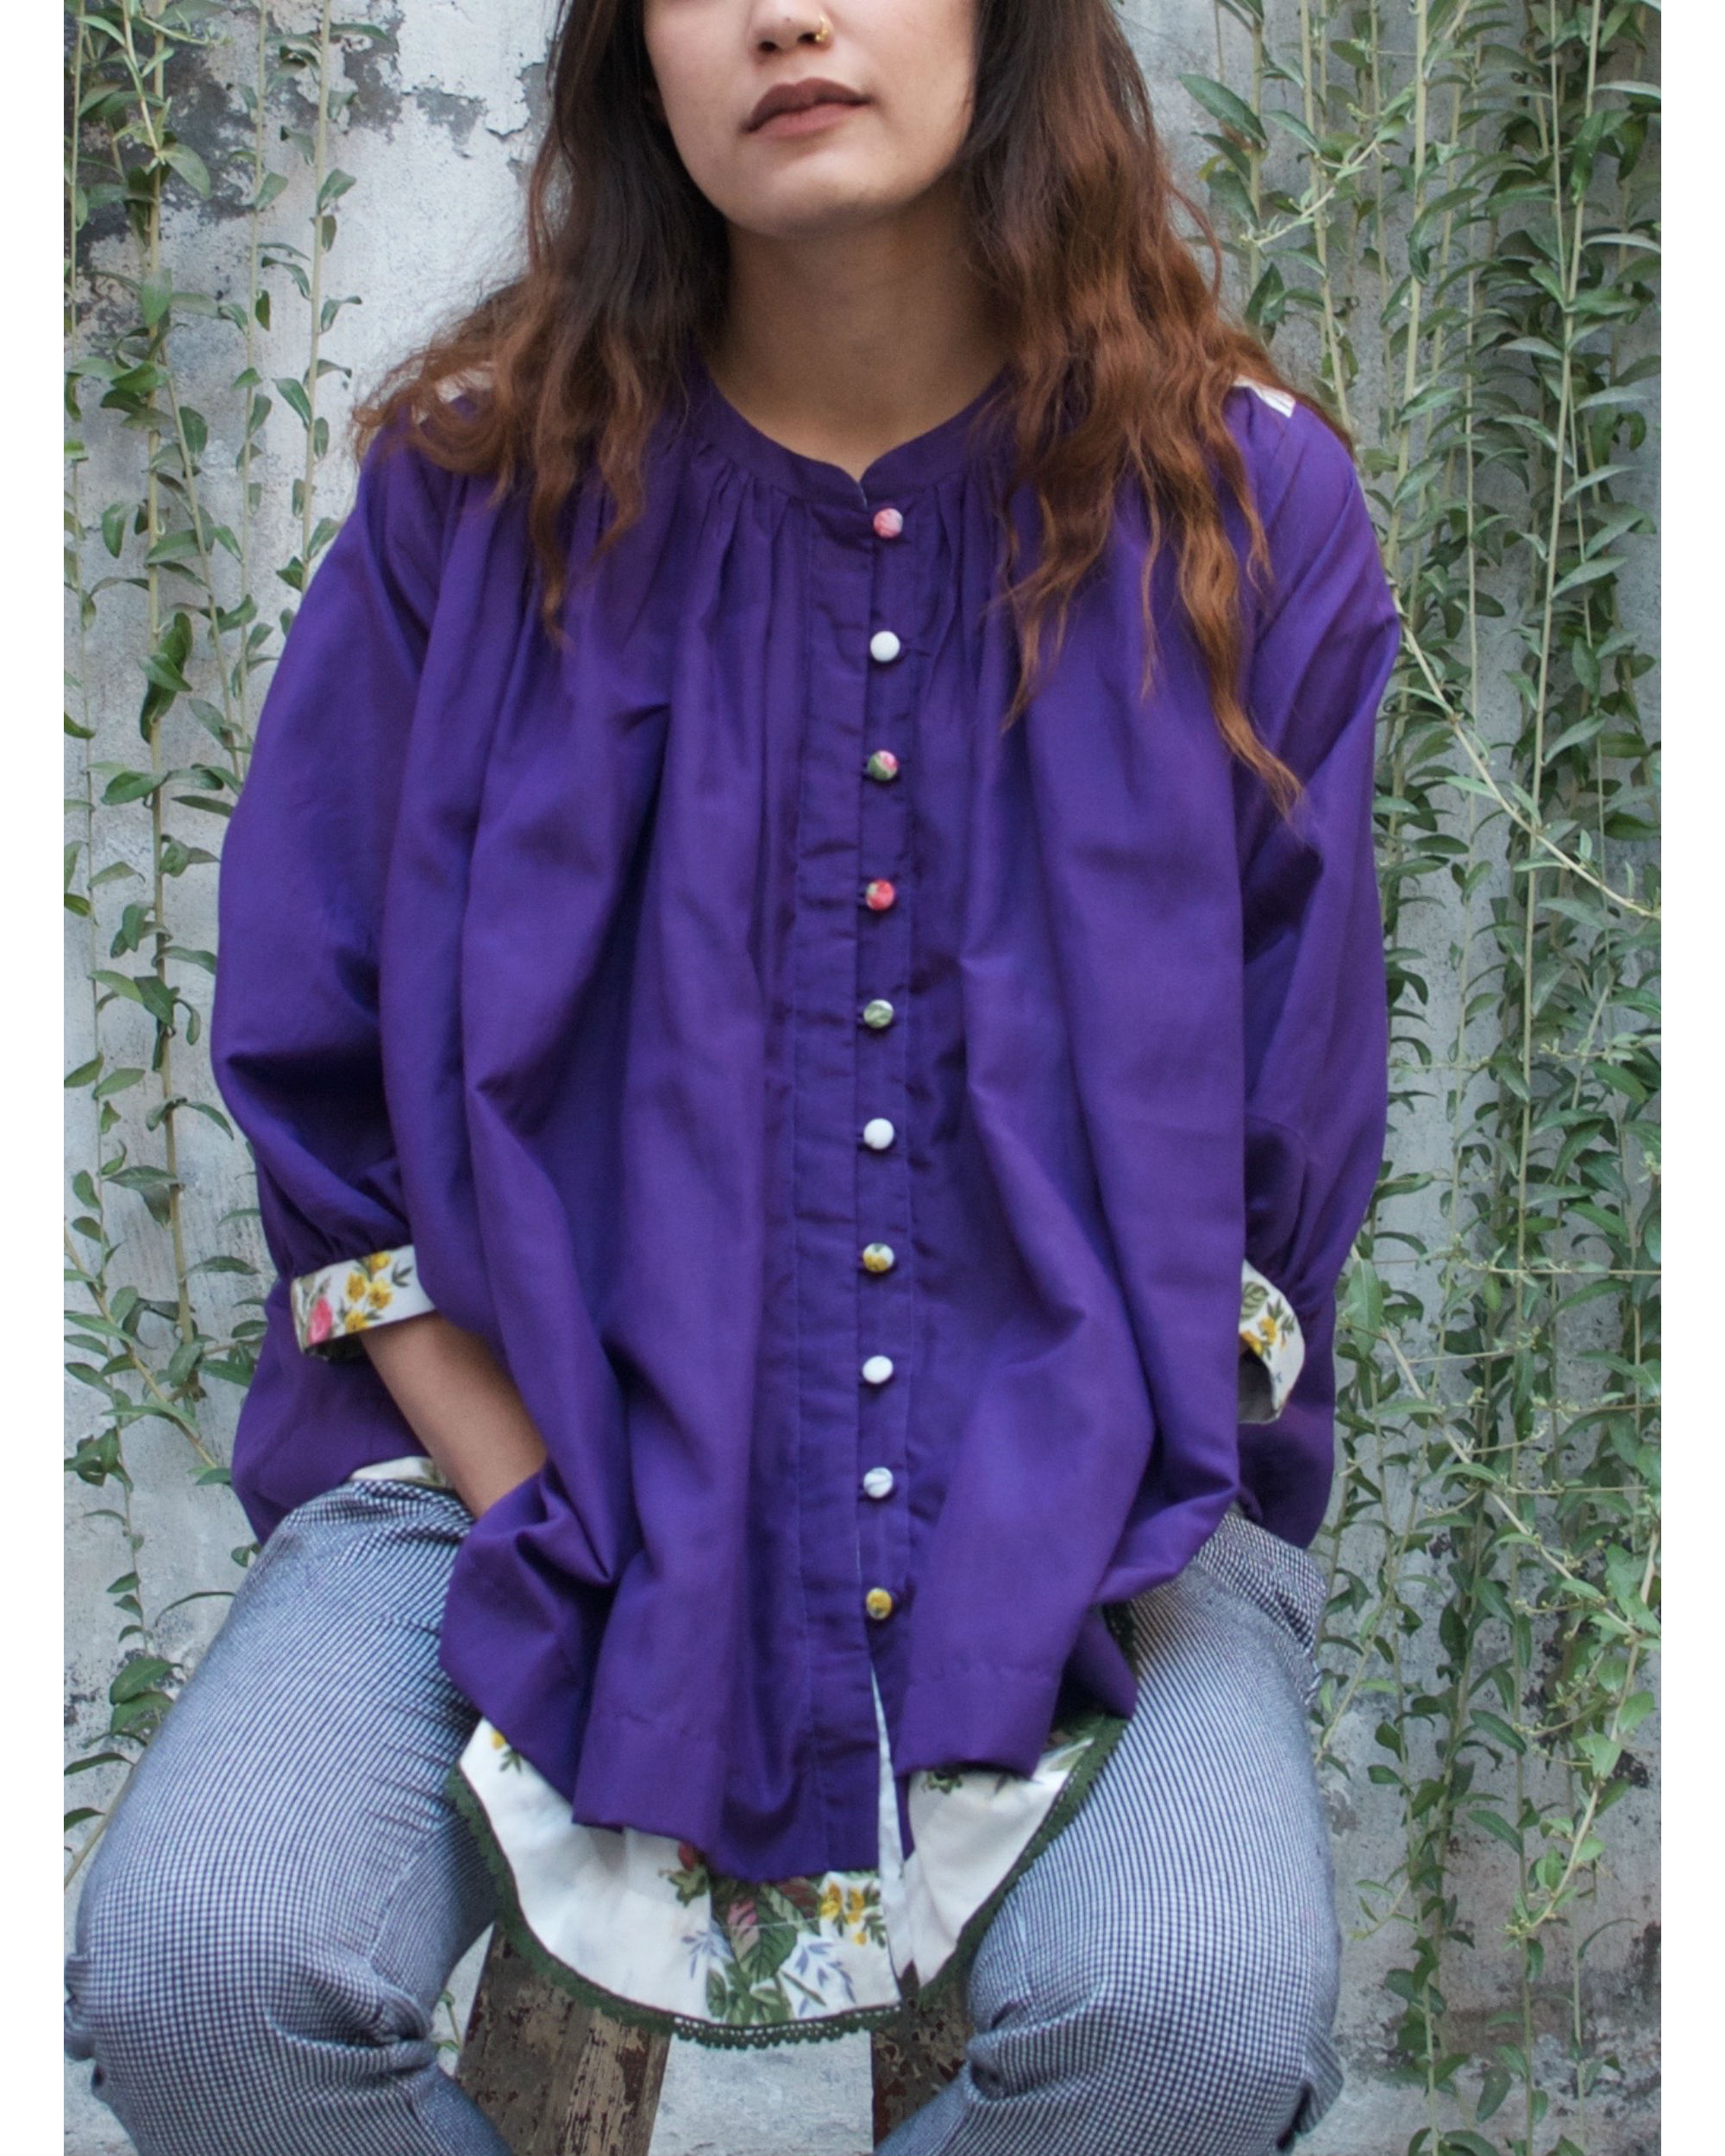 Whimsical violet peasant top